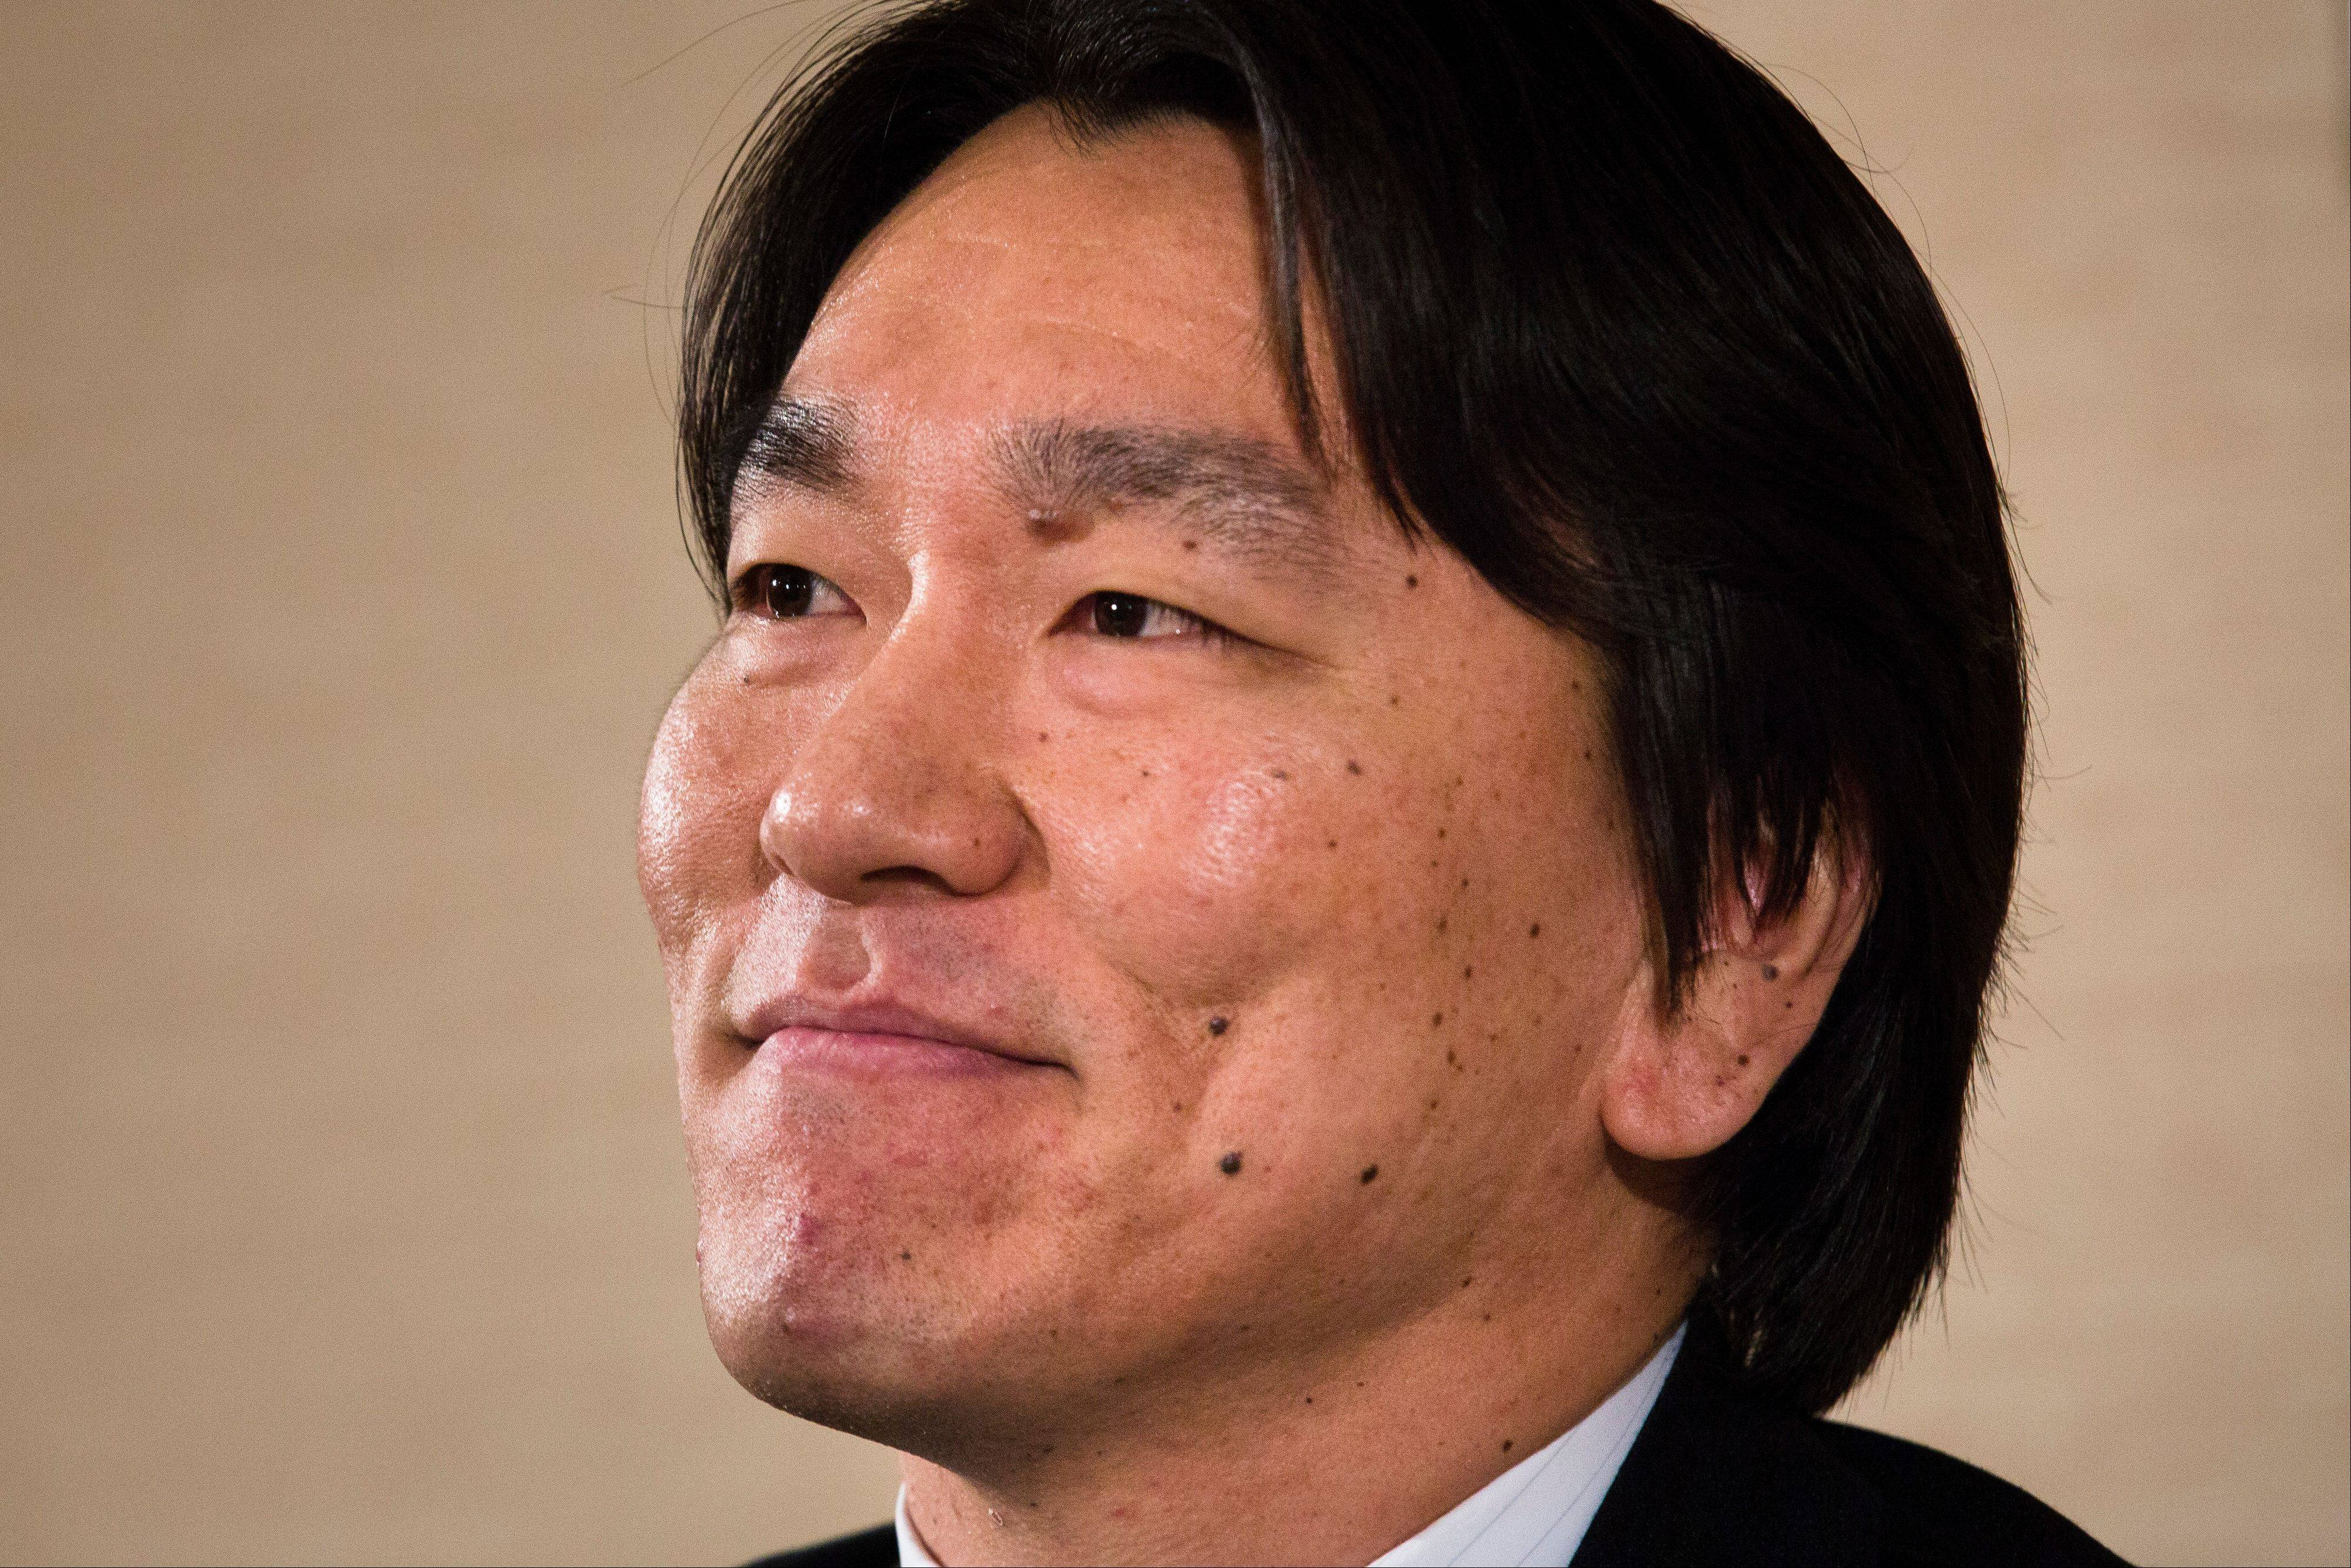 Baseball player Hideki Matsui smiles during a news conference to announce his retirement Thursday in New York.